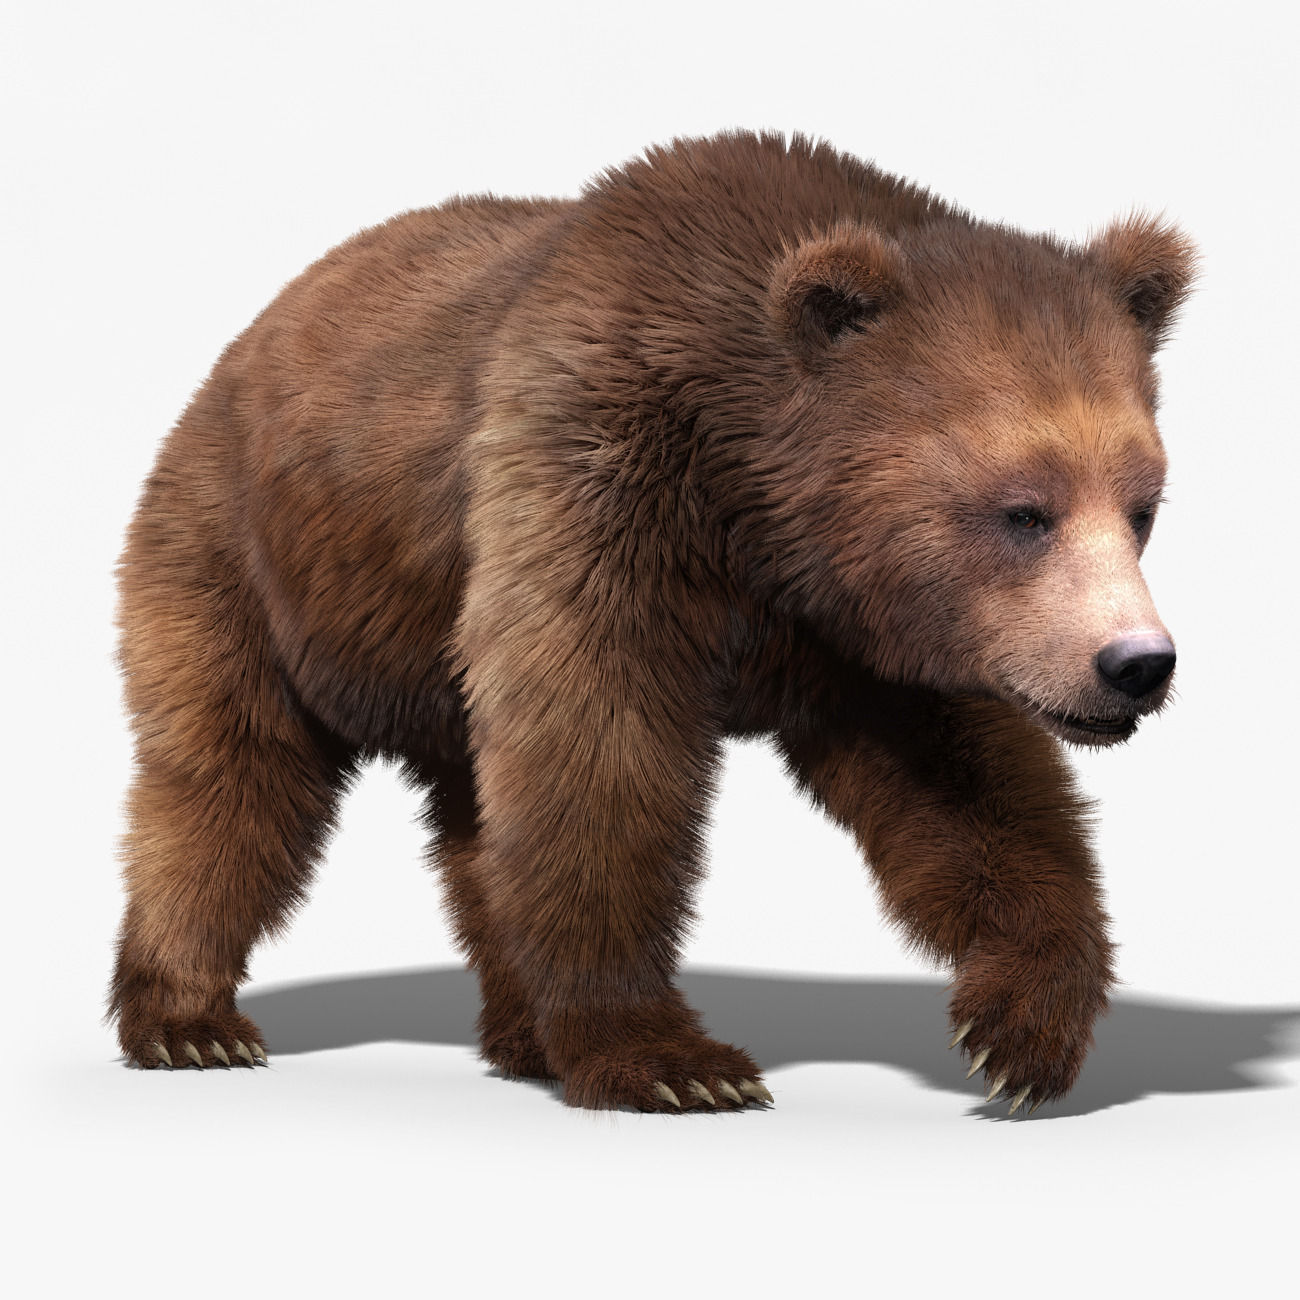 Brown Bear 3 Fur Animated 3d Model Animated Rigged Max